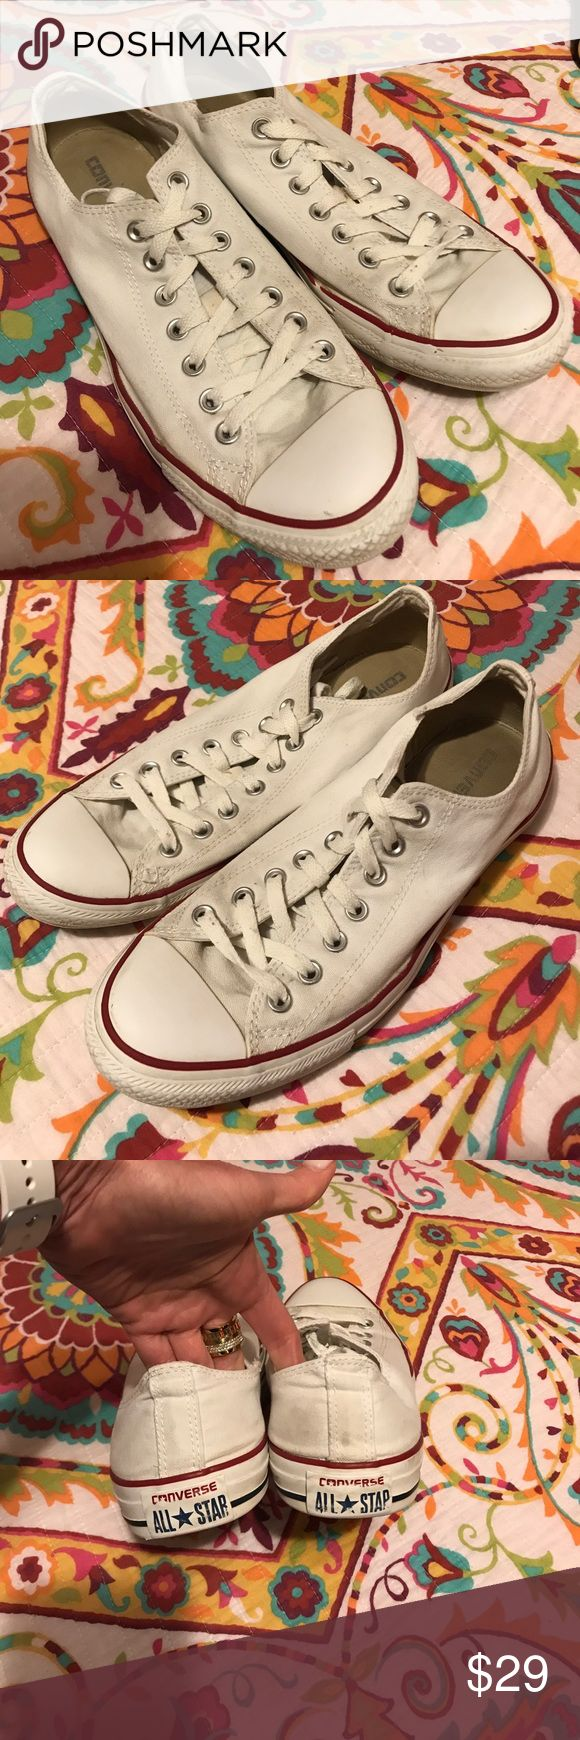 Converse All Stars size 10 Men's Gently Loved Men's Converse All Star in size 10,  classic go to shoe Converse Shoes Sneakers